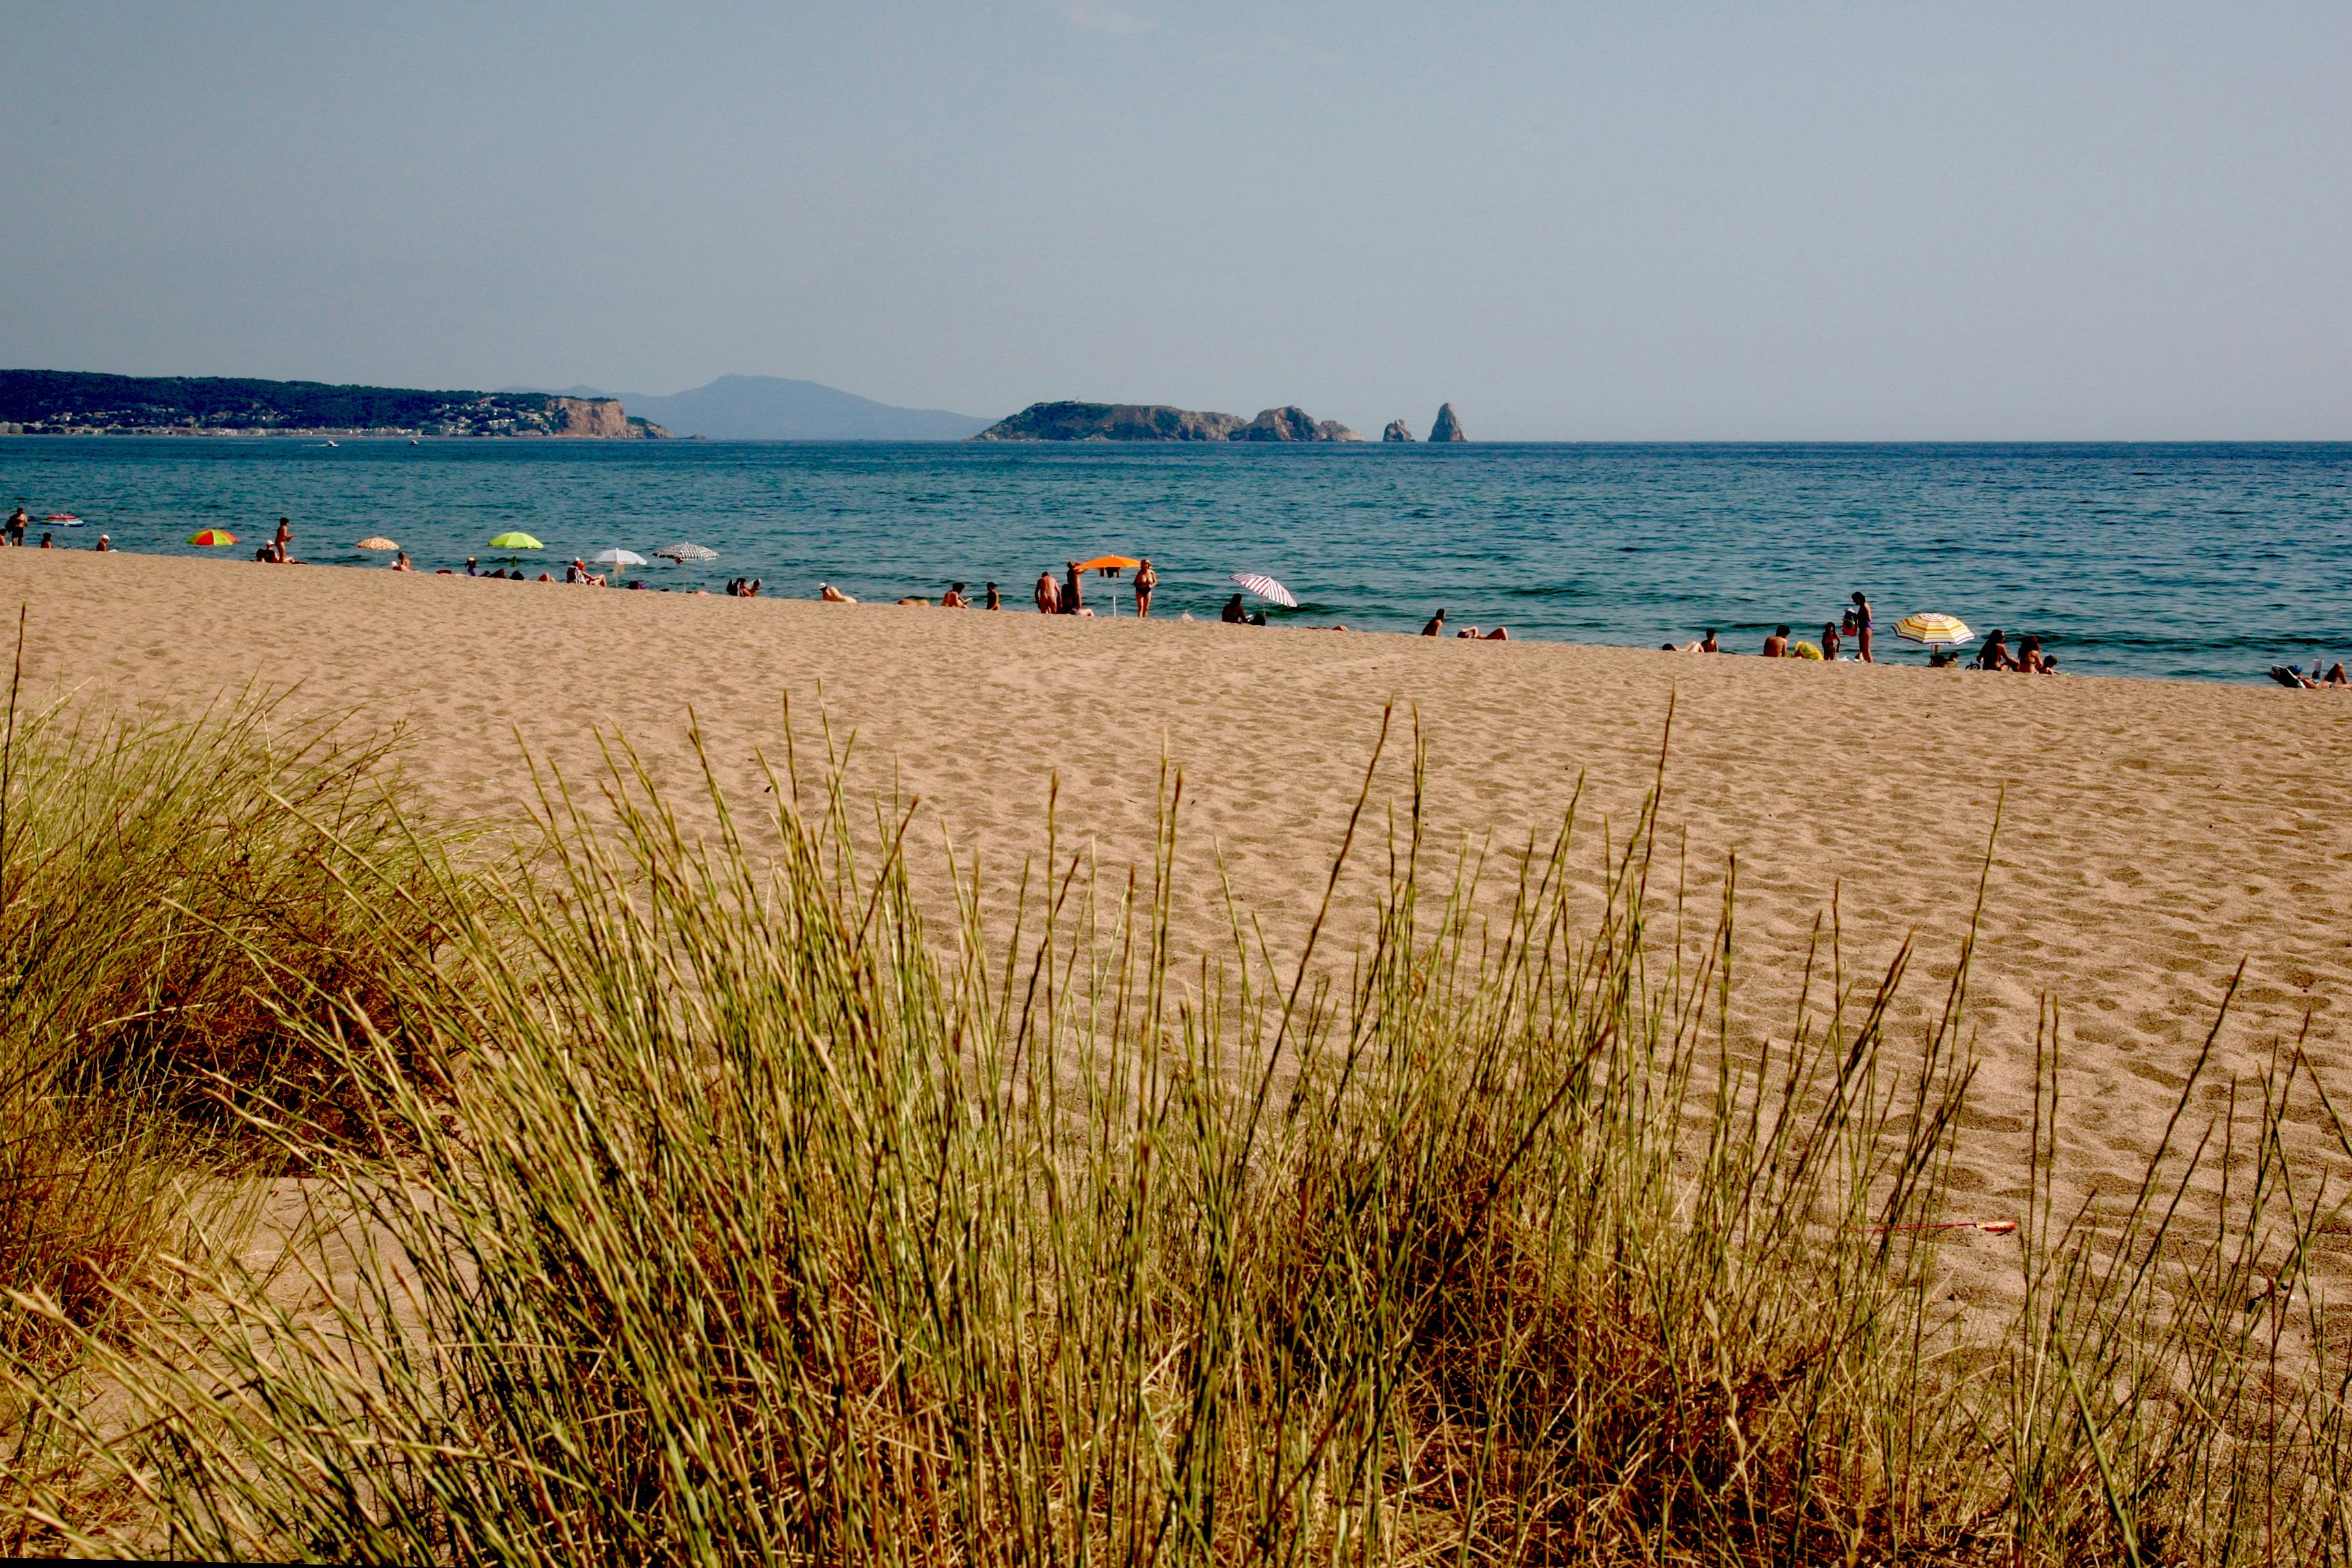 En holidays shared images guides spain costa brava jpg - Platja De Pals